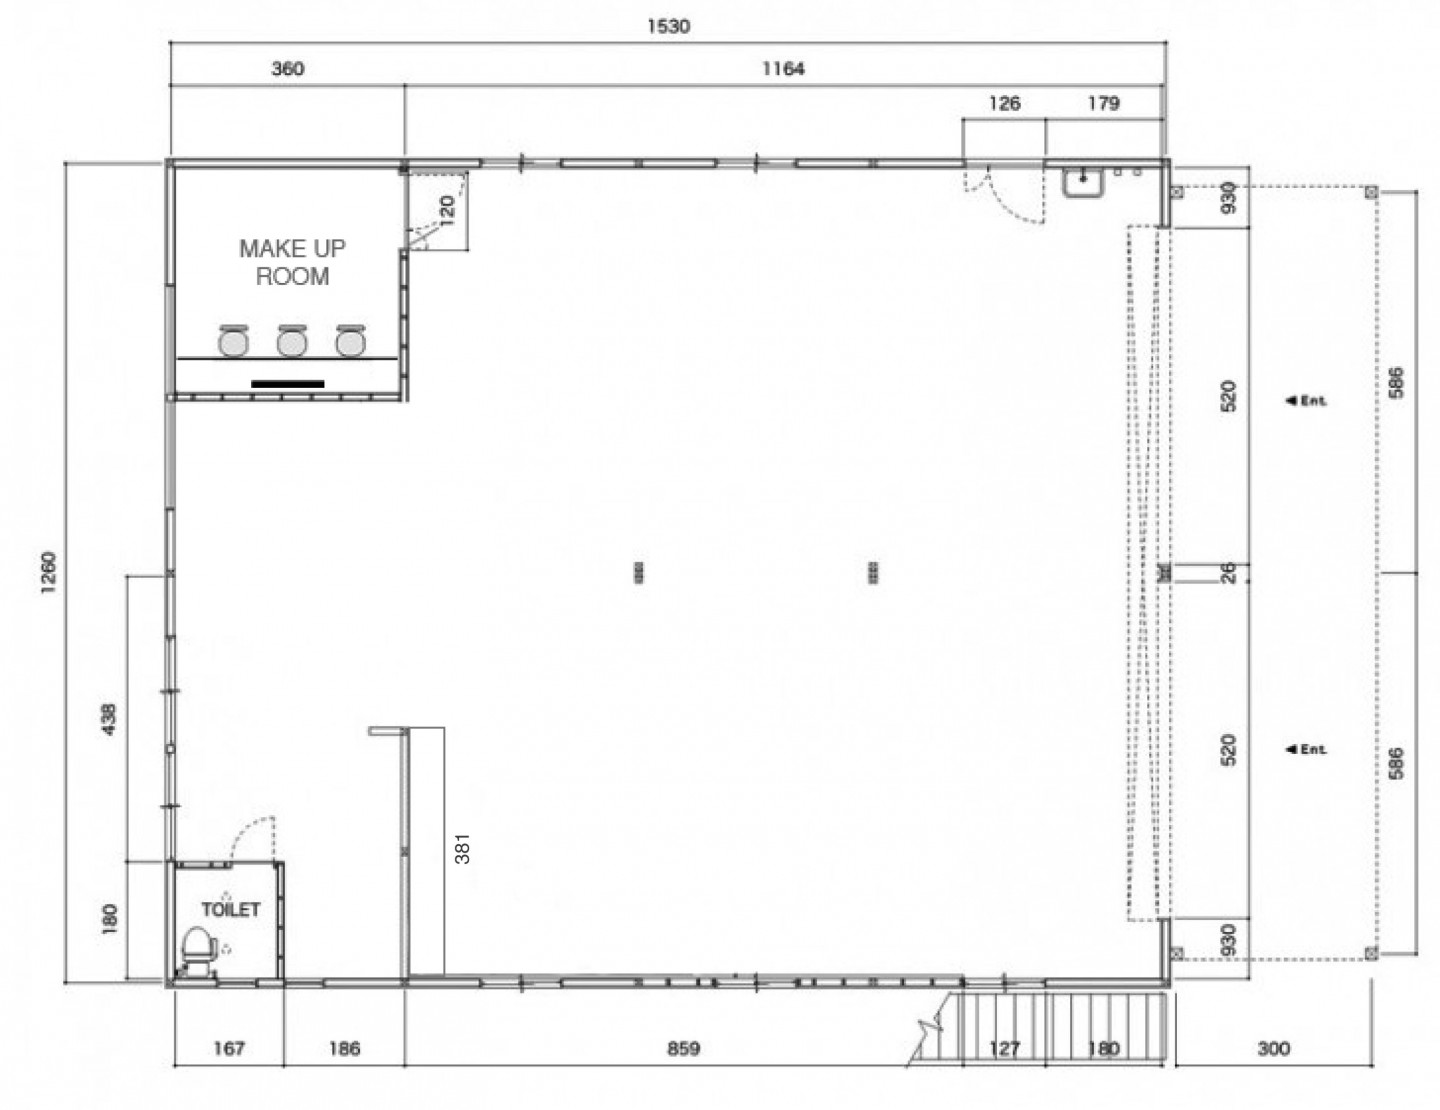 HoxtonGarage_FloorPlan_0120